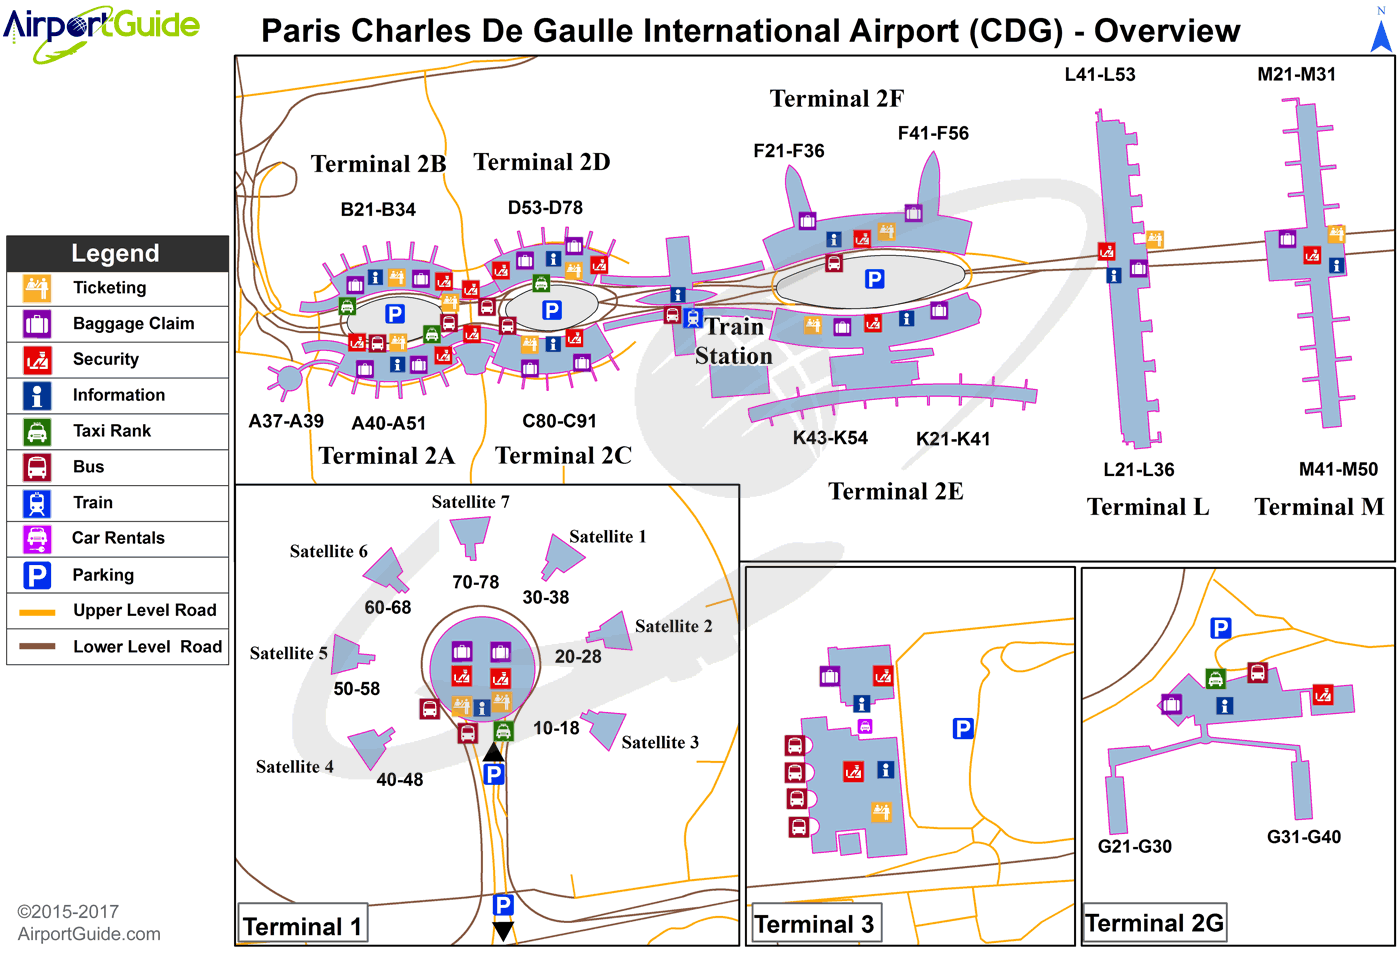 Paris - Charles de Gaulle International (CDG) Airport Terminal Maps on